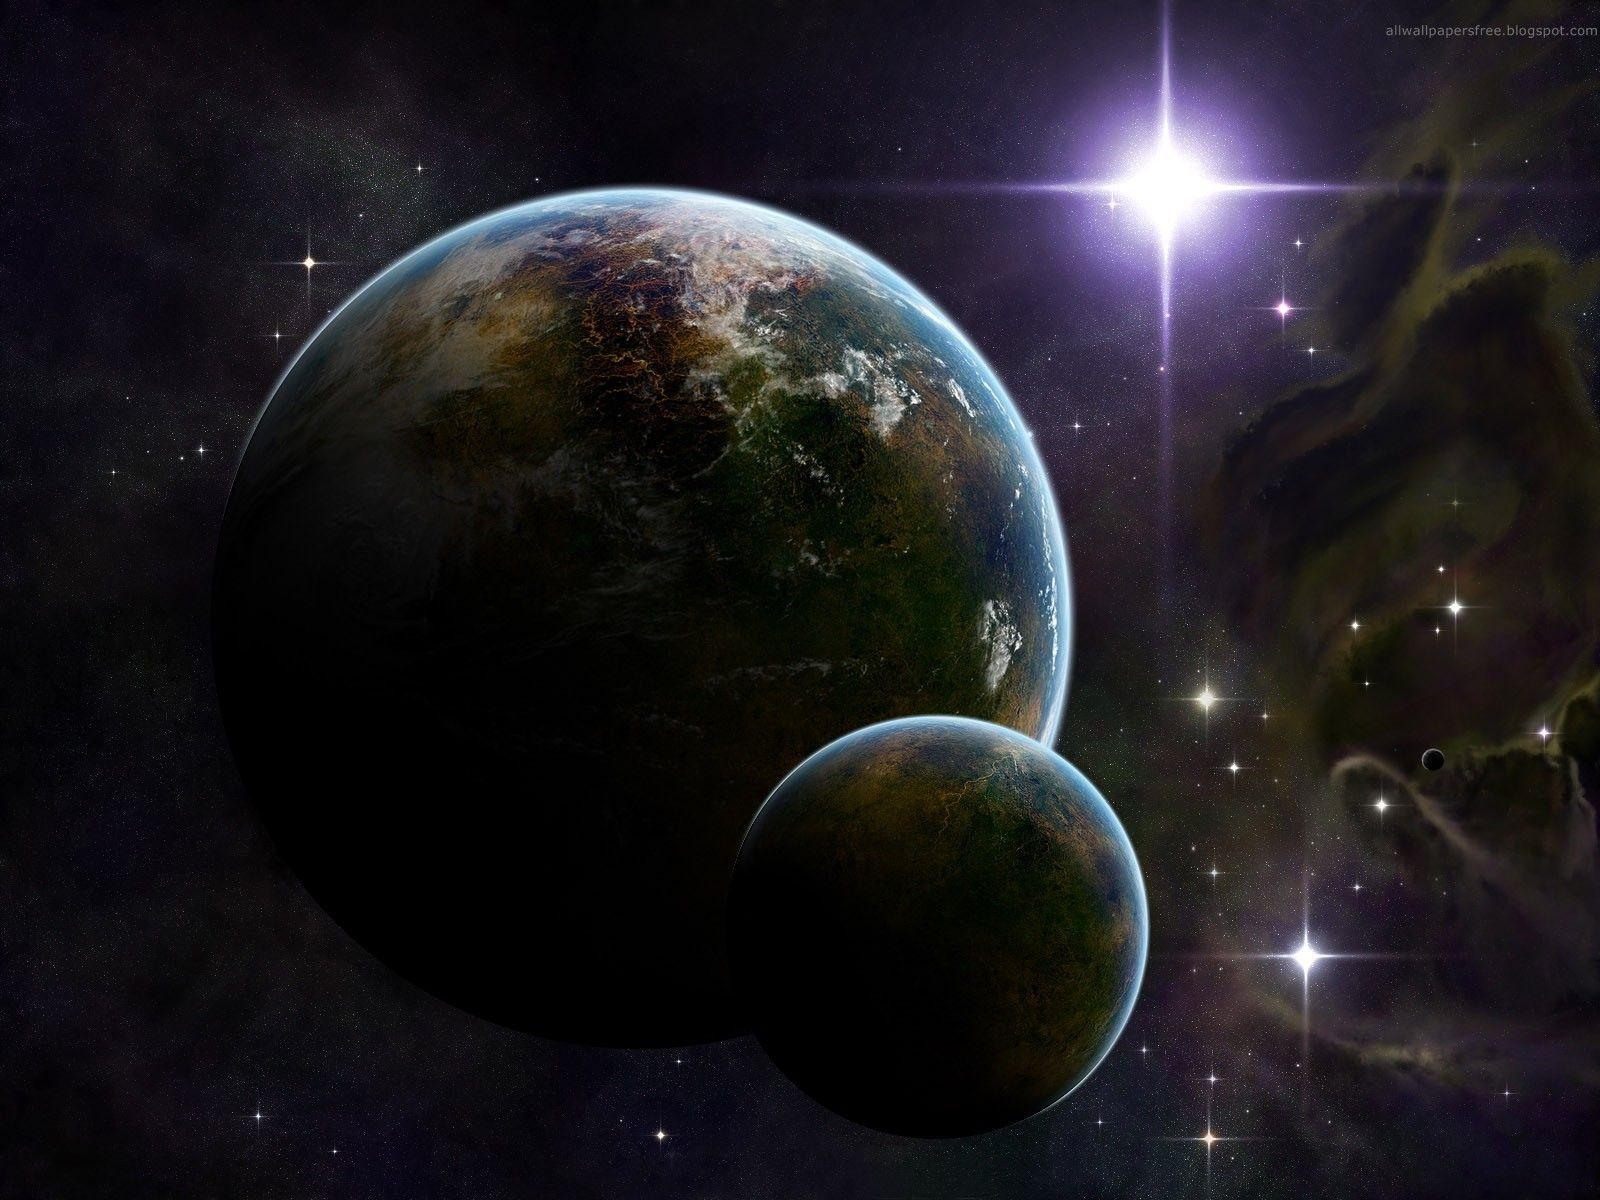 Outer Space Planets Hd Background Wallpaper 37 HD Wallpapers ...